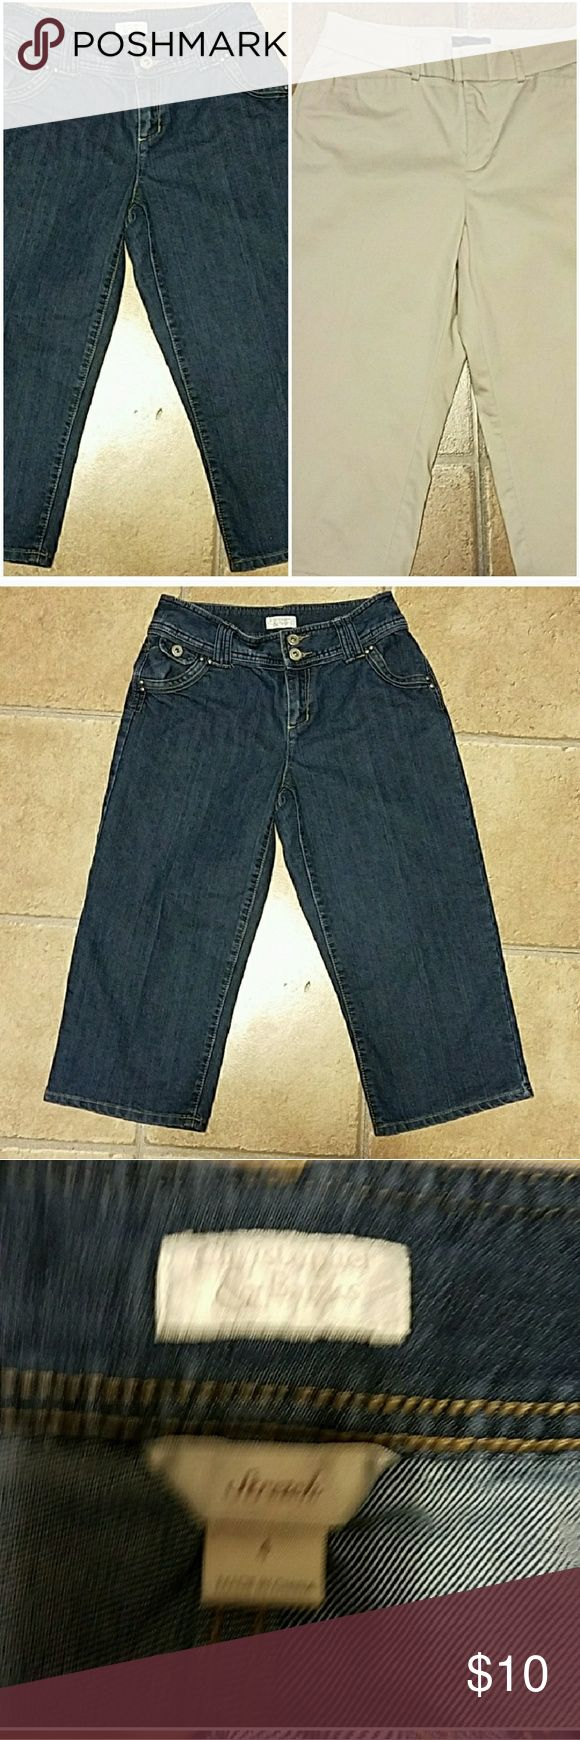 2 pairs of women's capri pants Included is 2 pairs of women's capri pants. One pair is Docker brand and is khaki colored. The other are Christopher and Banks and are jean capris. Both pairs have been worn but are an excellent preowned condition. Pants Capris